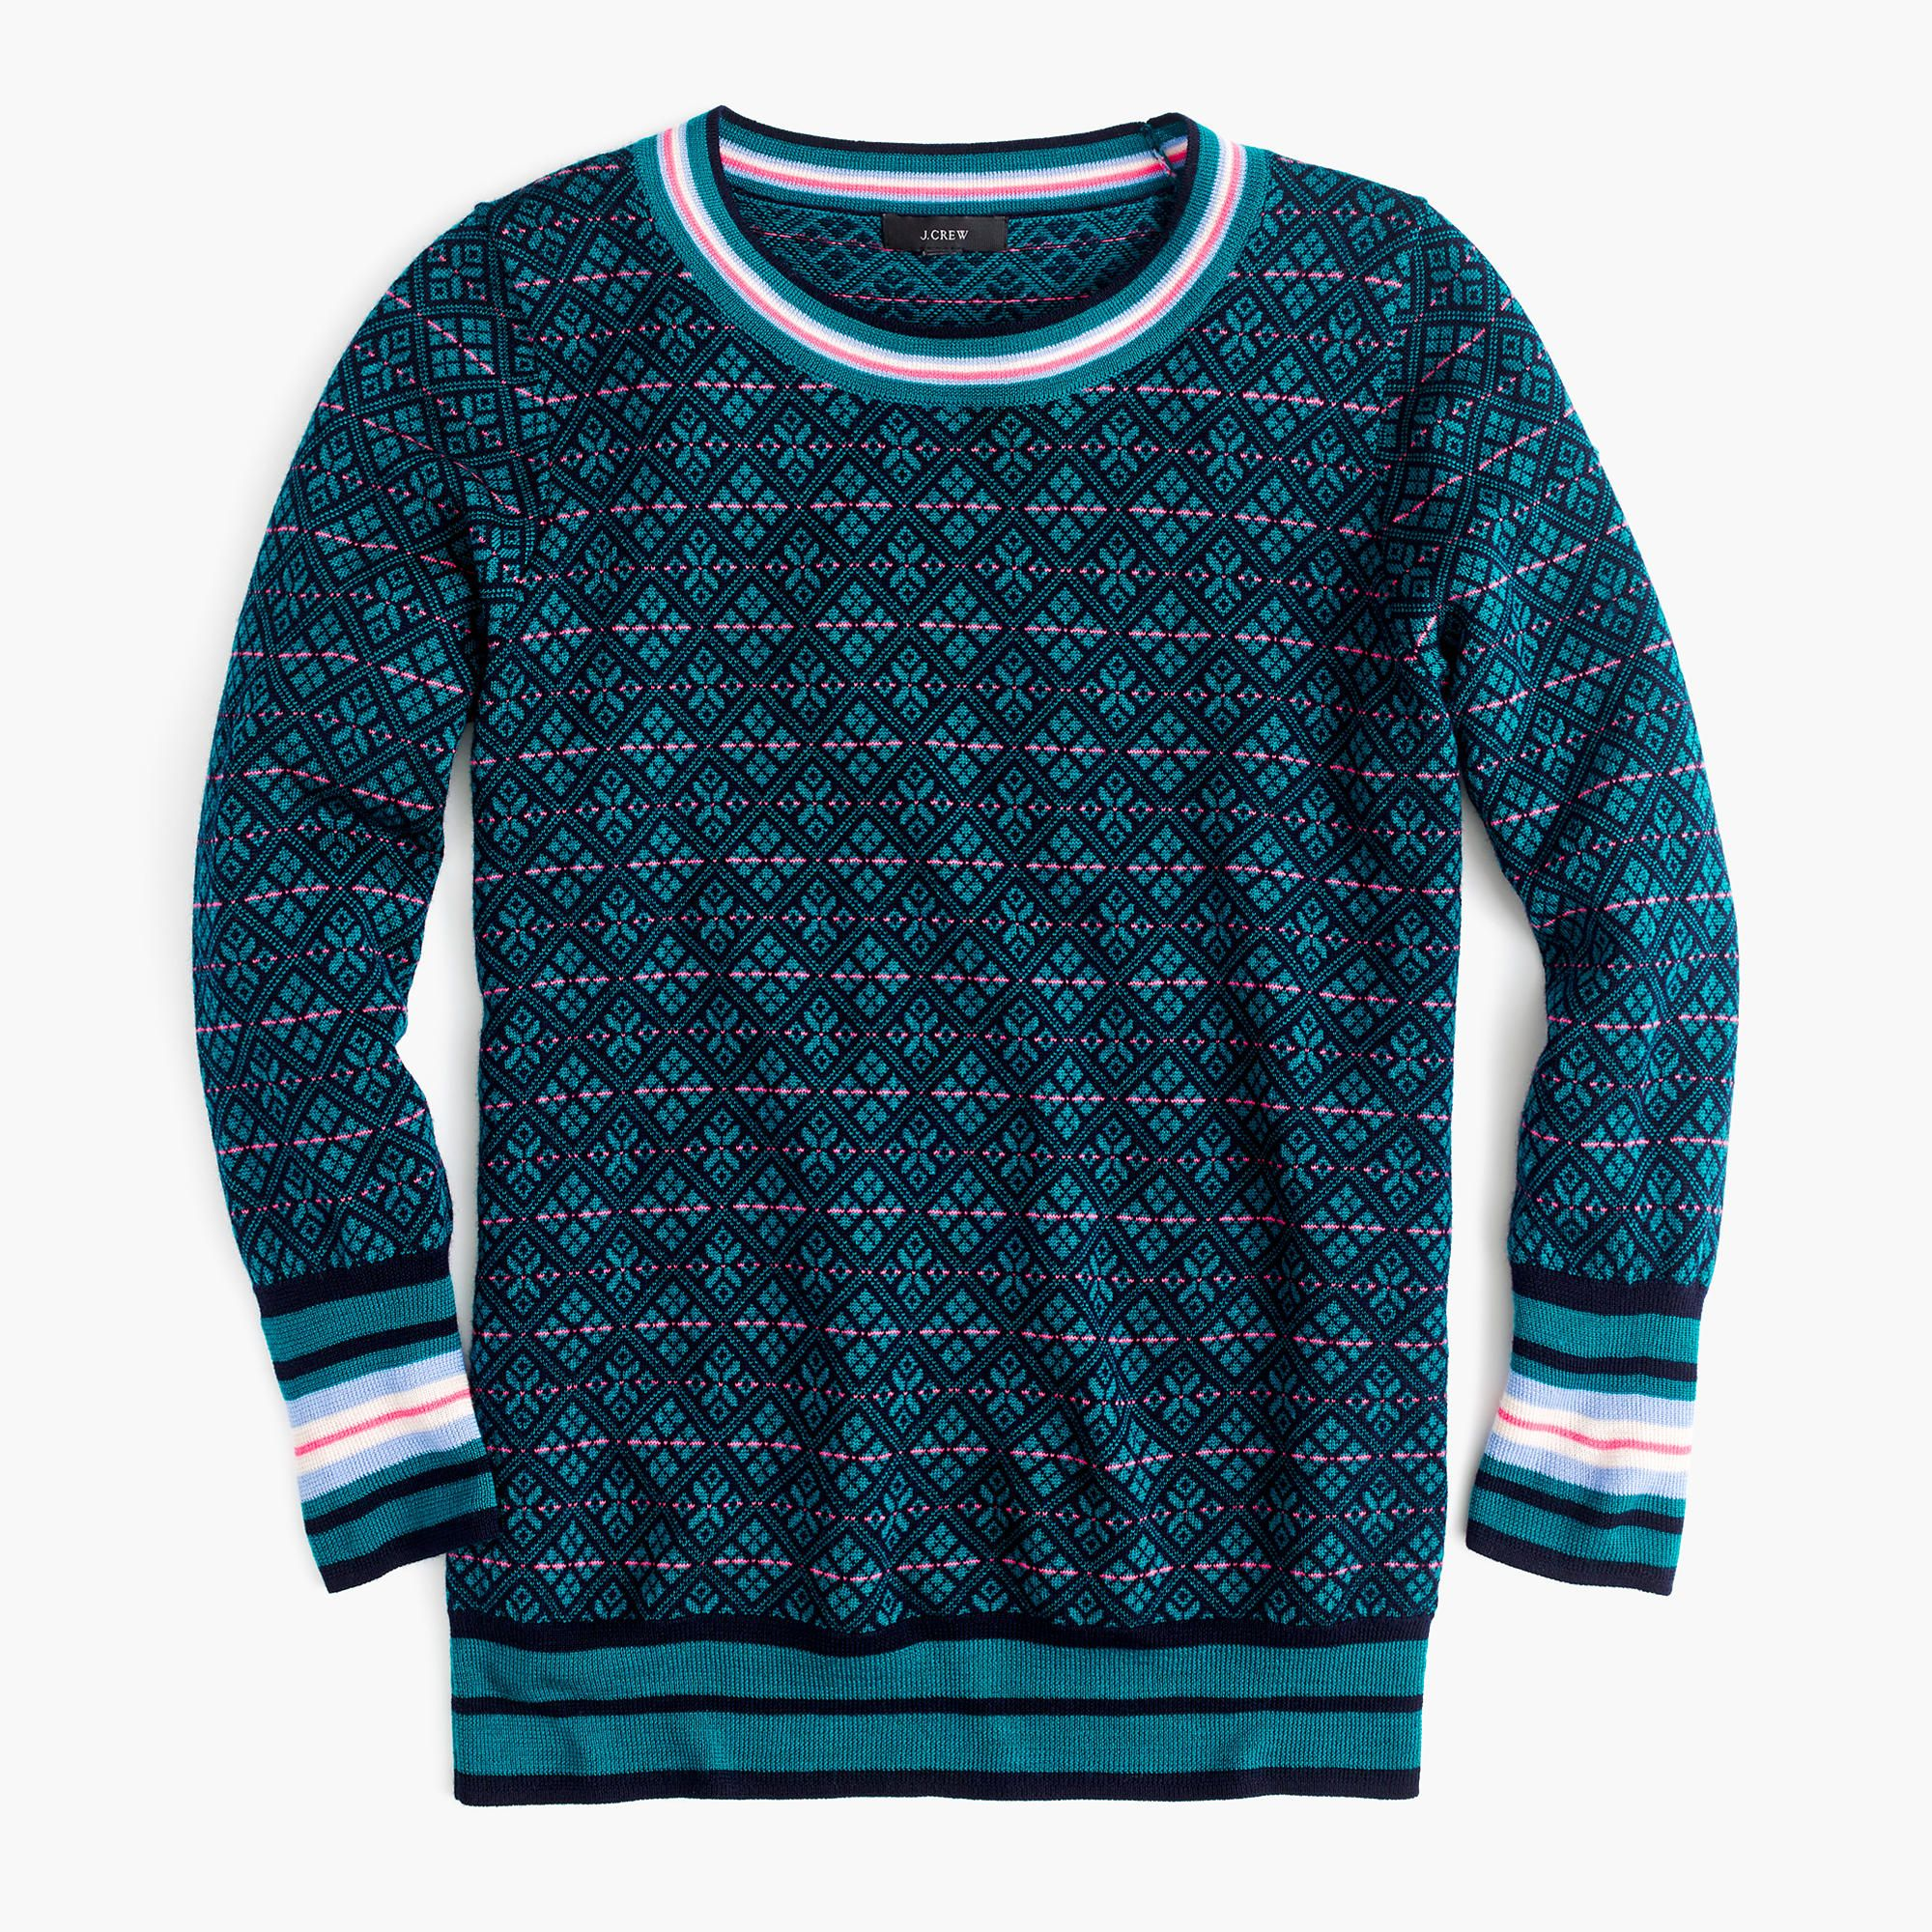 Shop the Tippi Sweater In Festive Fair Isle at JCrew.com and see ...